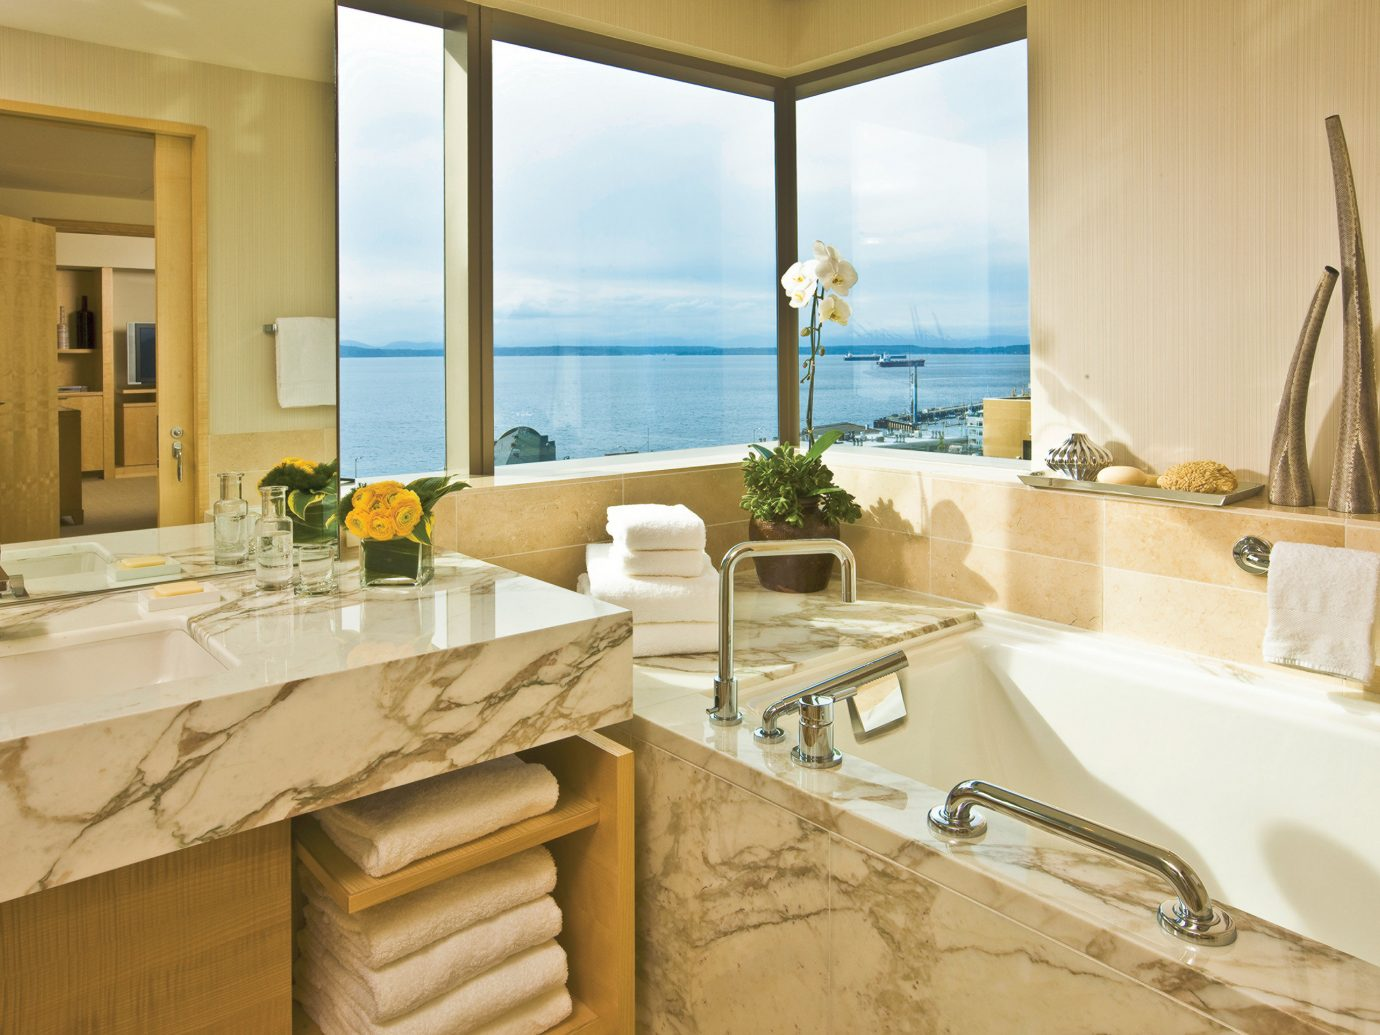 Bath Elegant Hotels Modern Scenic views Waterfront indoor bathroom window room sink property estate home counter interior design floor countertop Suite real estate apartment Villa tub bathtub